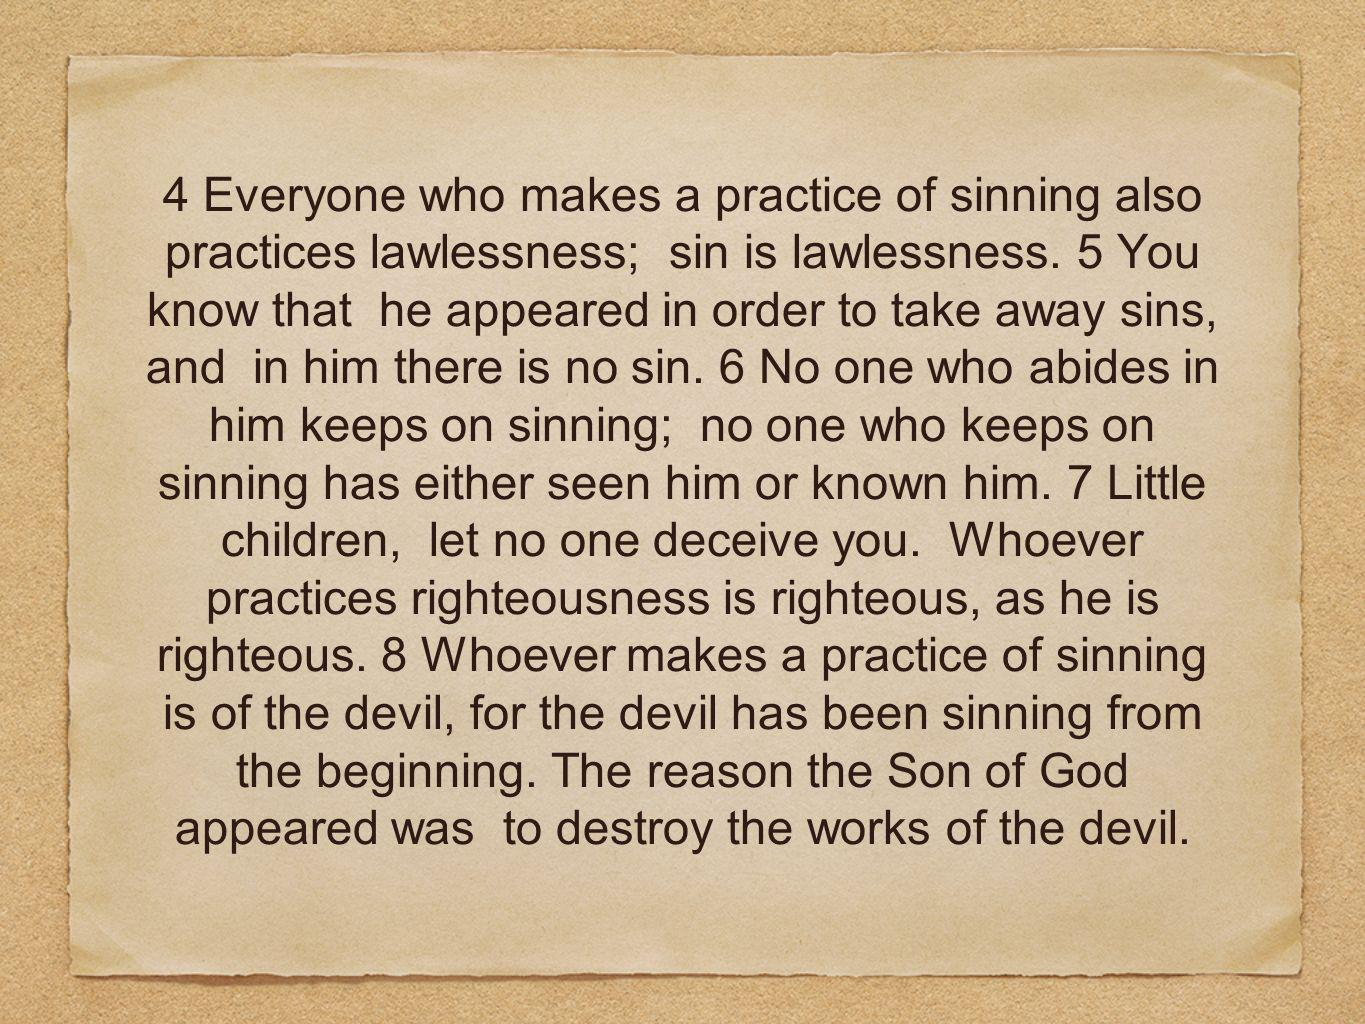 4 Everyone who makes a practice of sinning also practices lawlessness; sin is lawlessness.